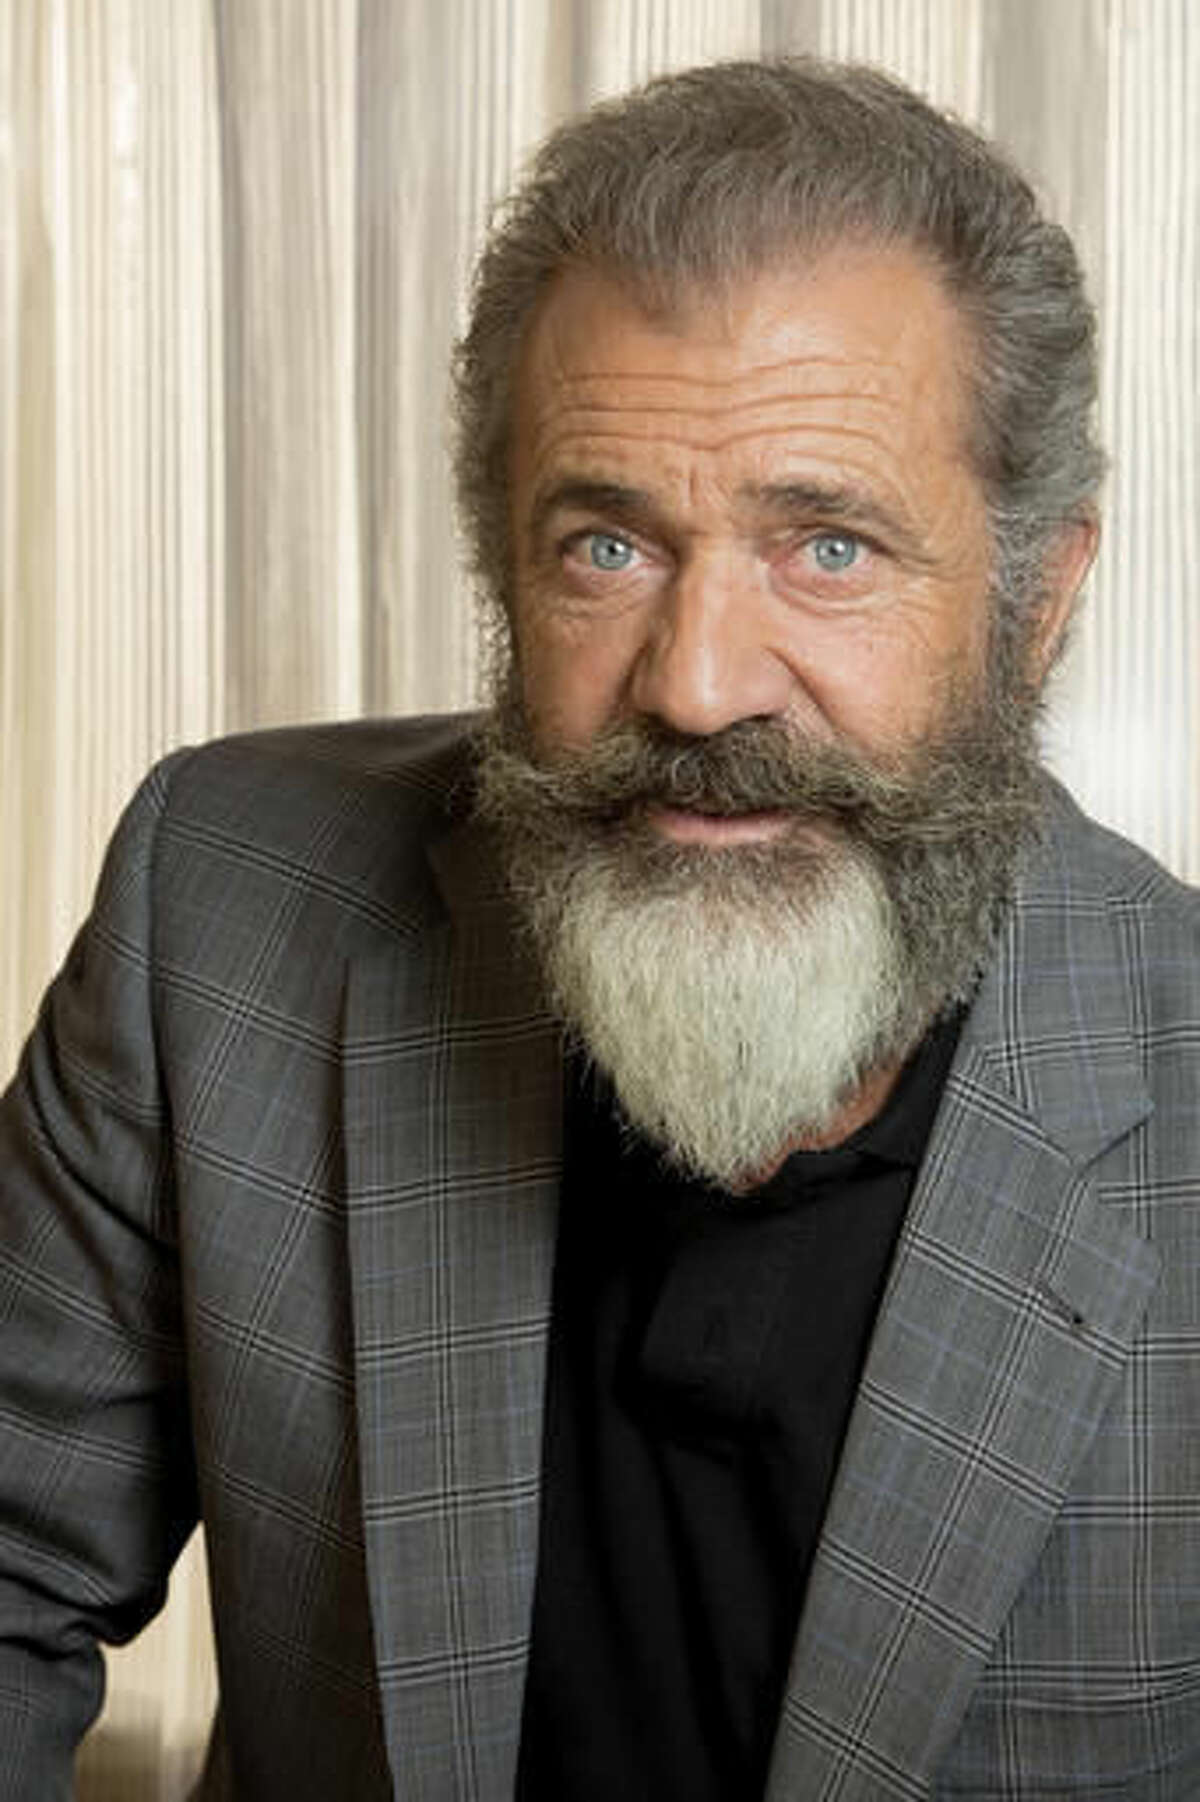 """Mel Gibson poses for a photo at the Ritz Carlton in New Orleans, Wednesday, Oct. 26, 2016. Gibson directed a film about Congressional Medal of Honor recipient Desmond Doss in a new movie titled, """"Hacksaw Ridge."""" (AP Photo/Max Becherer)"""